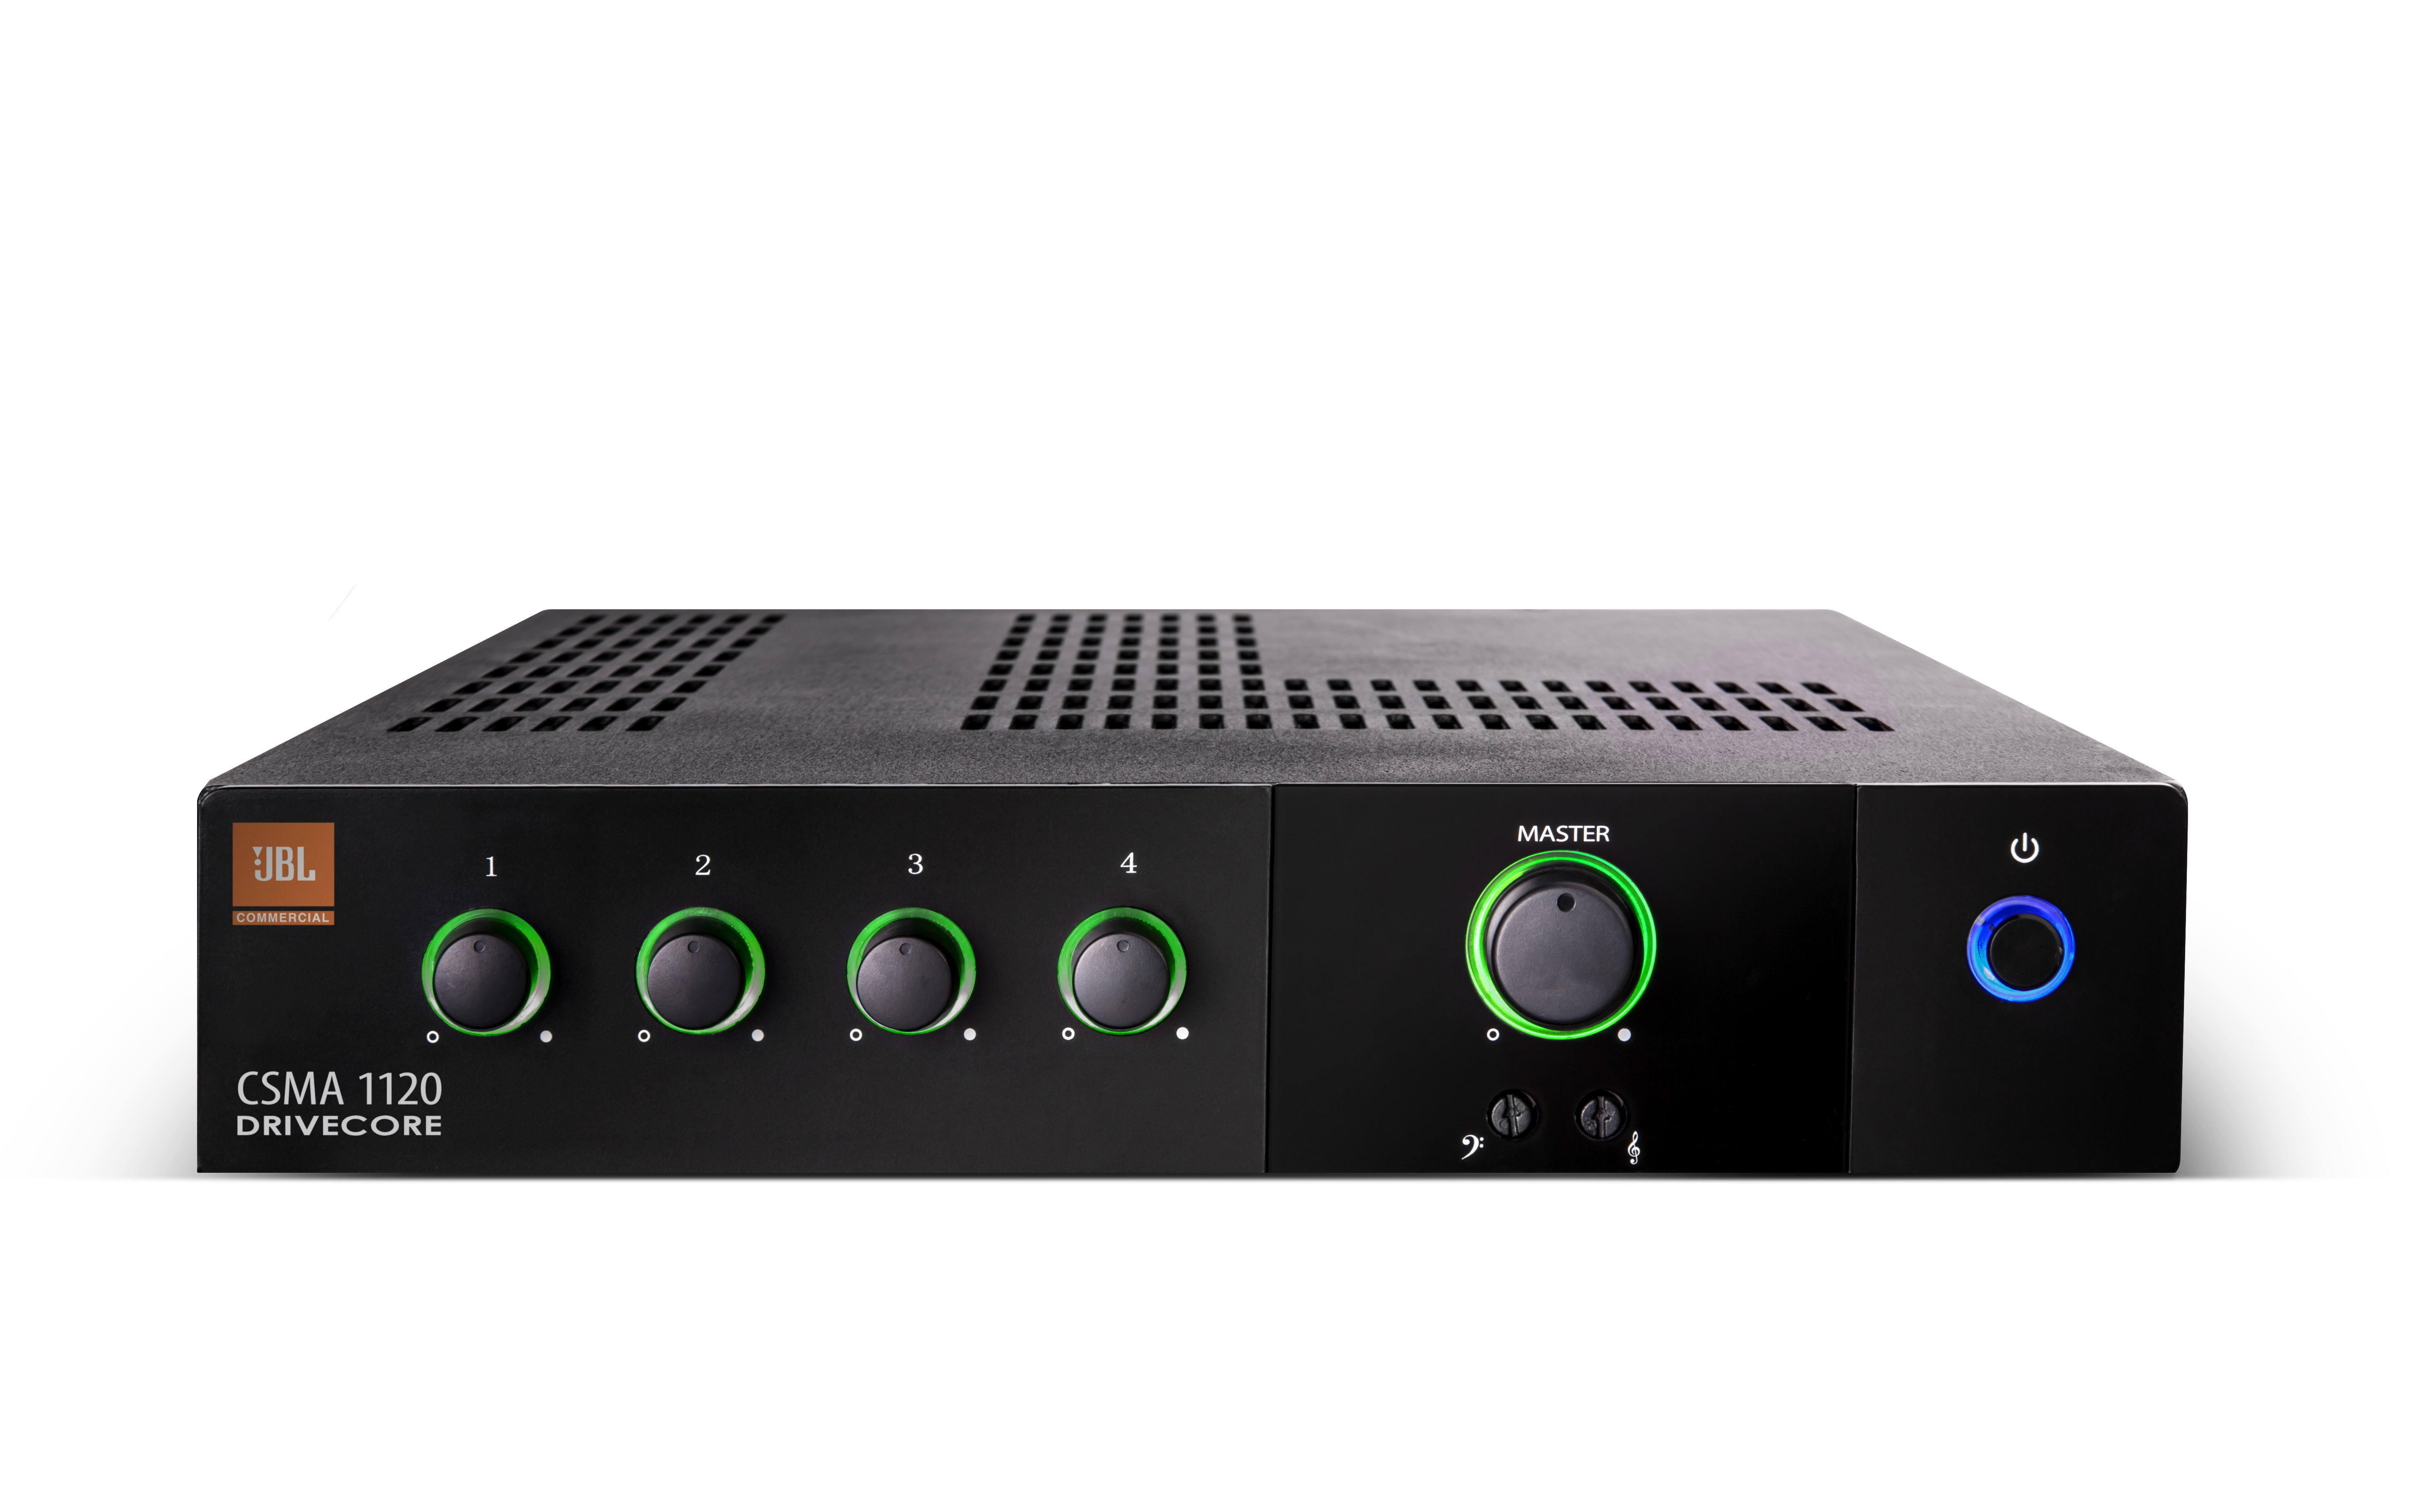 Watch moreover Techsupport together with Crown Xls 1502 Drivecore 2 Power  lifier 2 X 525w At 4 Ohms 245 508 moreover Lp Aspire Conga Set With Free Bongos moreover Index. on crown amplifiers